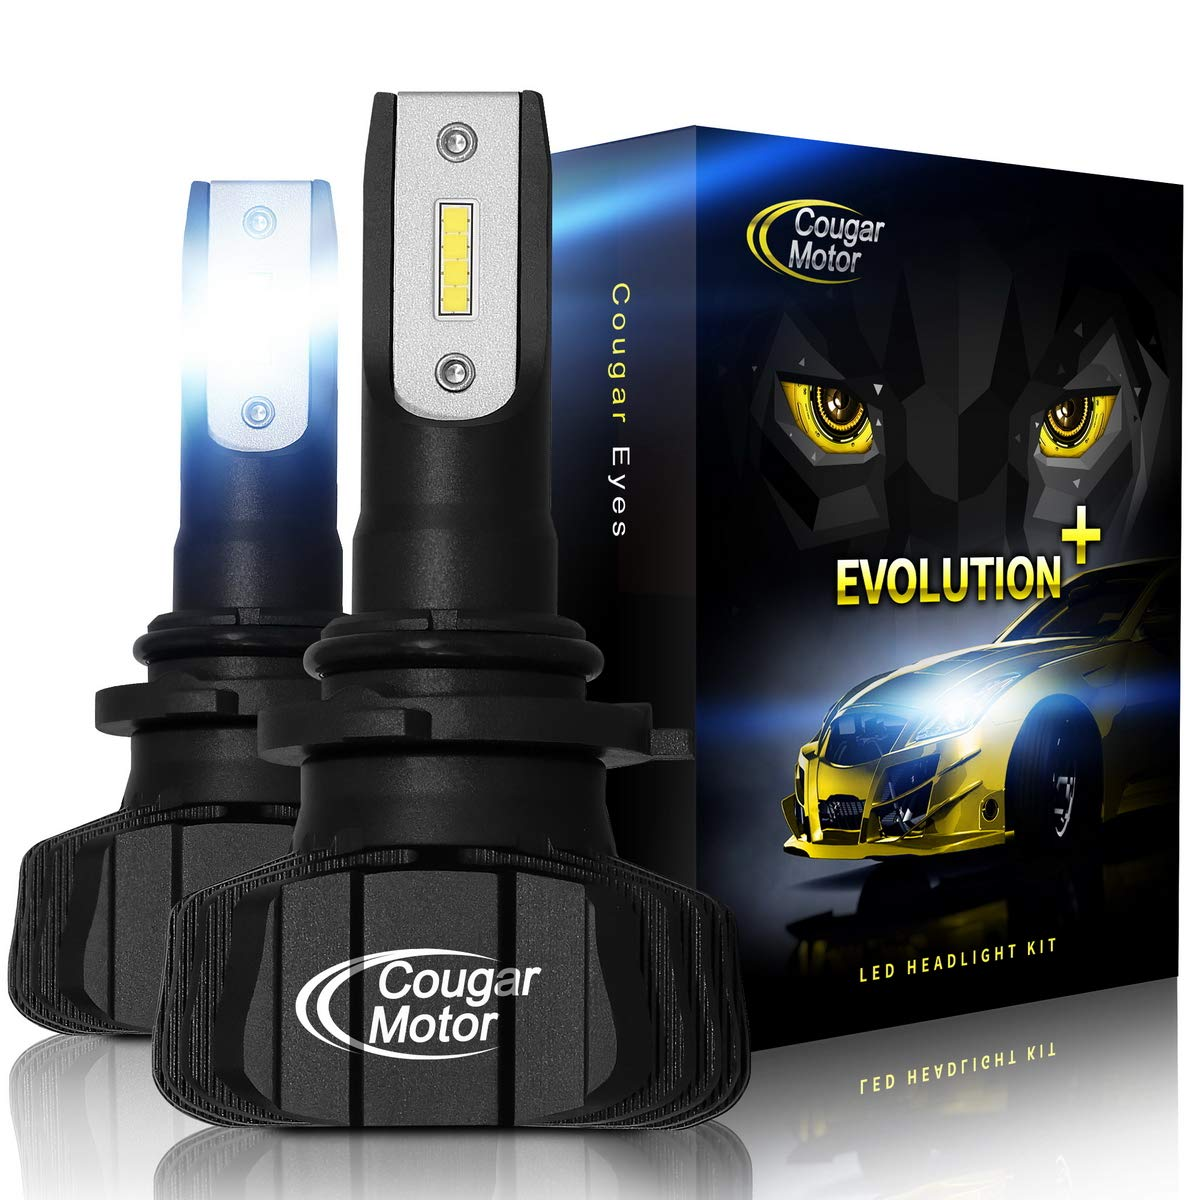 HB3 Cougar Motor 9005 Led headlight bulbs 3D Bionic Technology 9600Lm 6500K Fanless All-in-One Conversion Kit